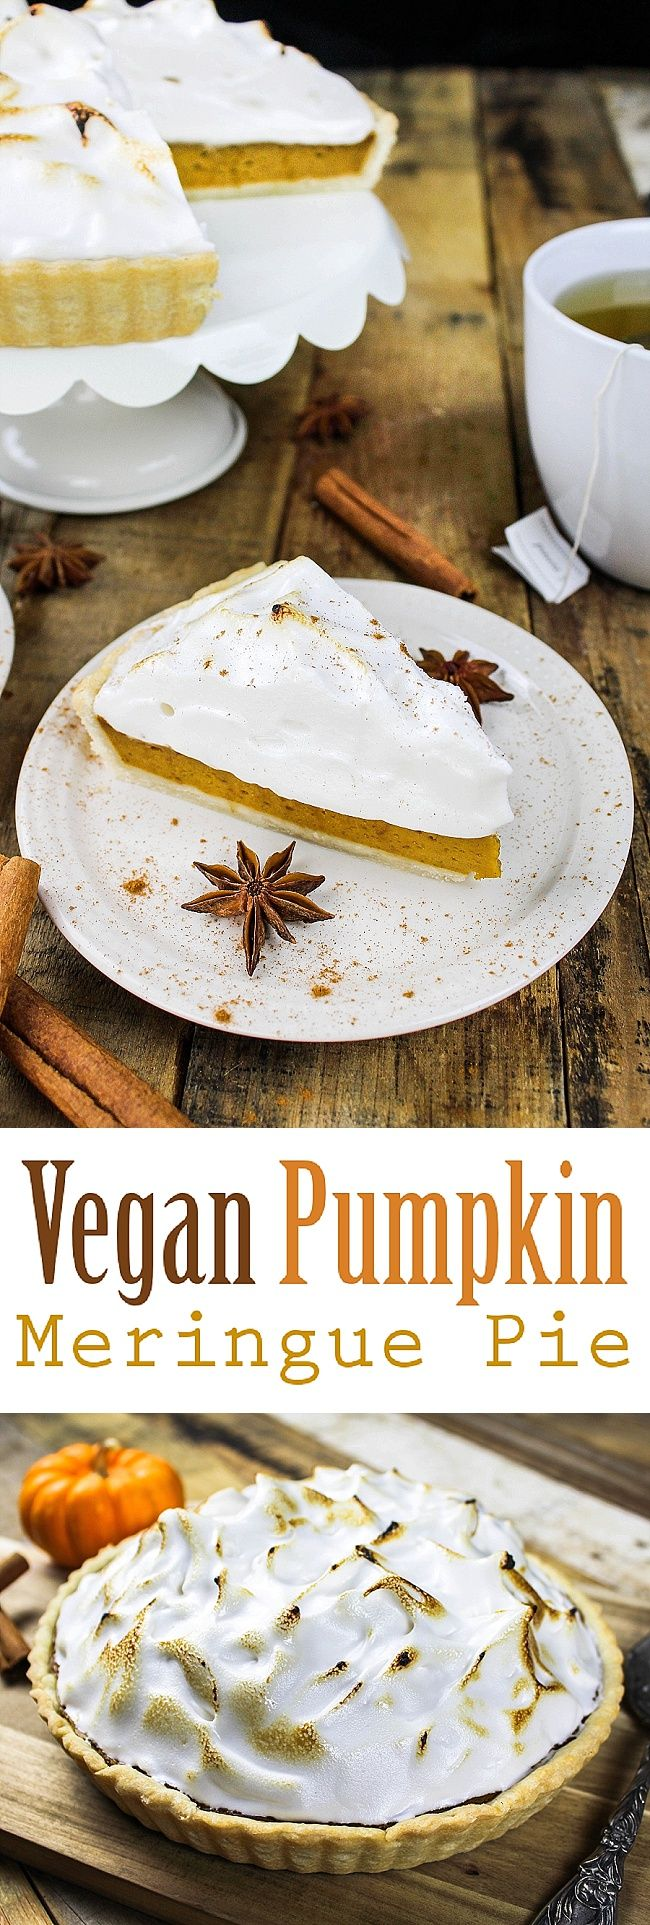 Put a little twist on tradition with this Vegan Pumpkin Meringue Pie. It's creamy, dreamy and gorgeous! It's so easy to make & calls for simple ingredients, too.  It's perfect for Thanksgiving, Christmas & the fall weather.